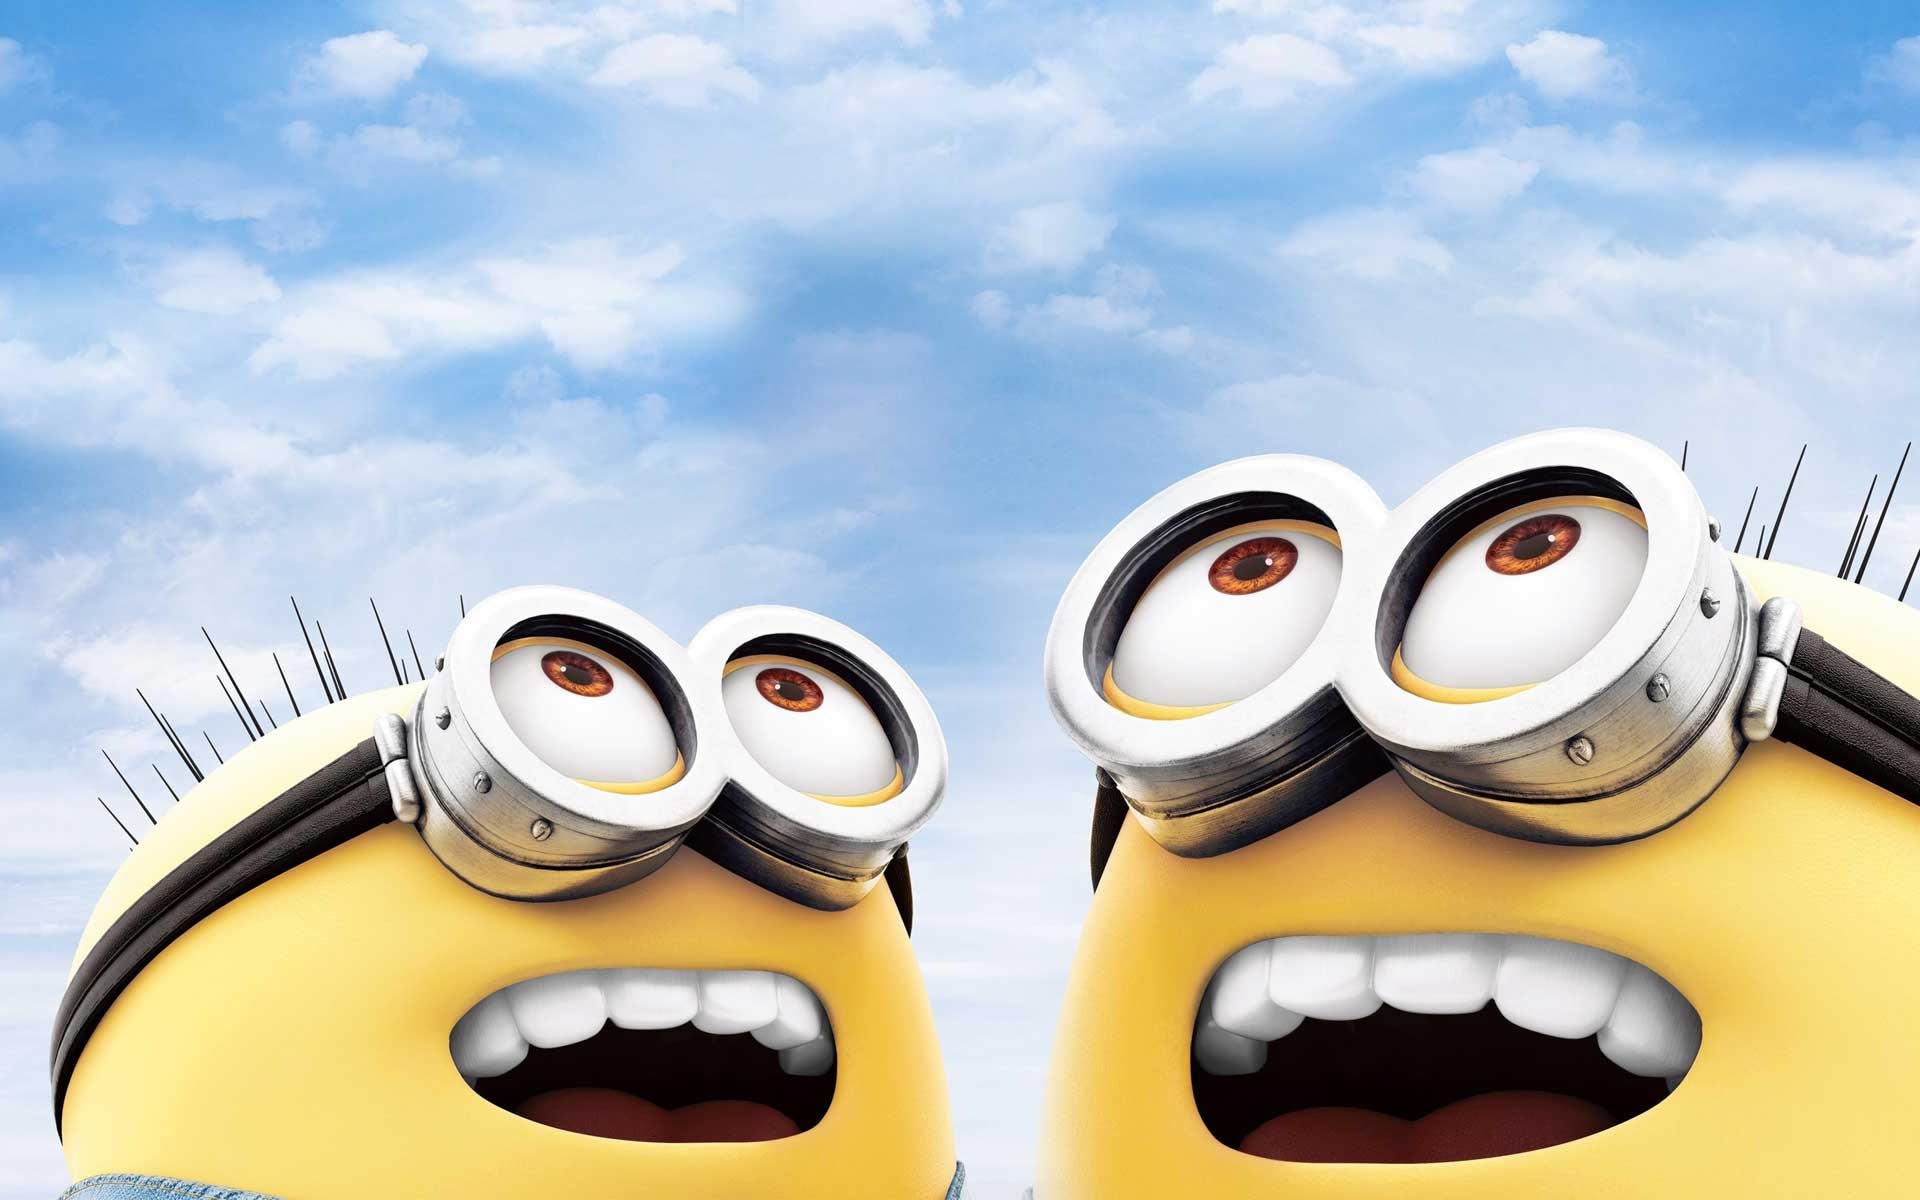 Image of: R43dsici Photos Of Minions Wallpaper Minions Icons8 25 Cute Minions Wallpapers Collection